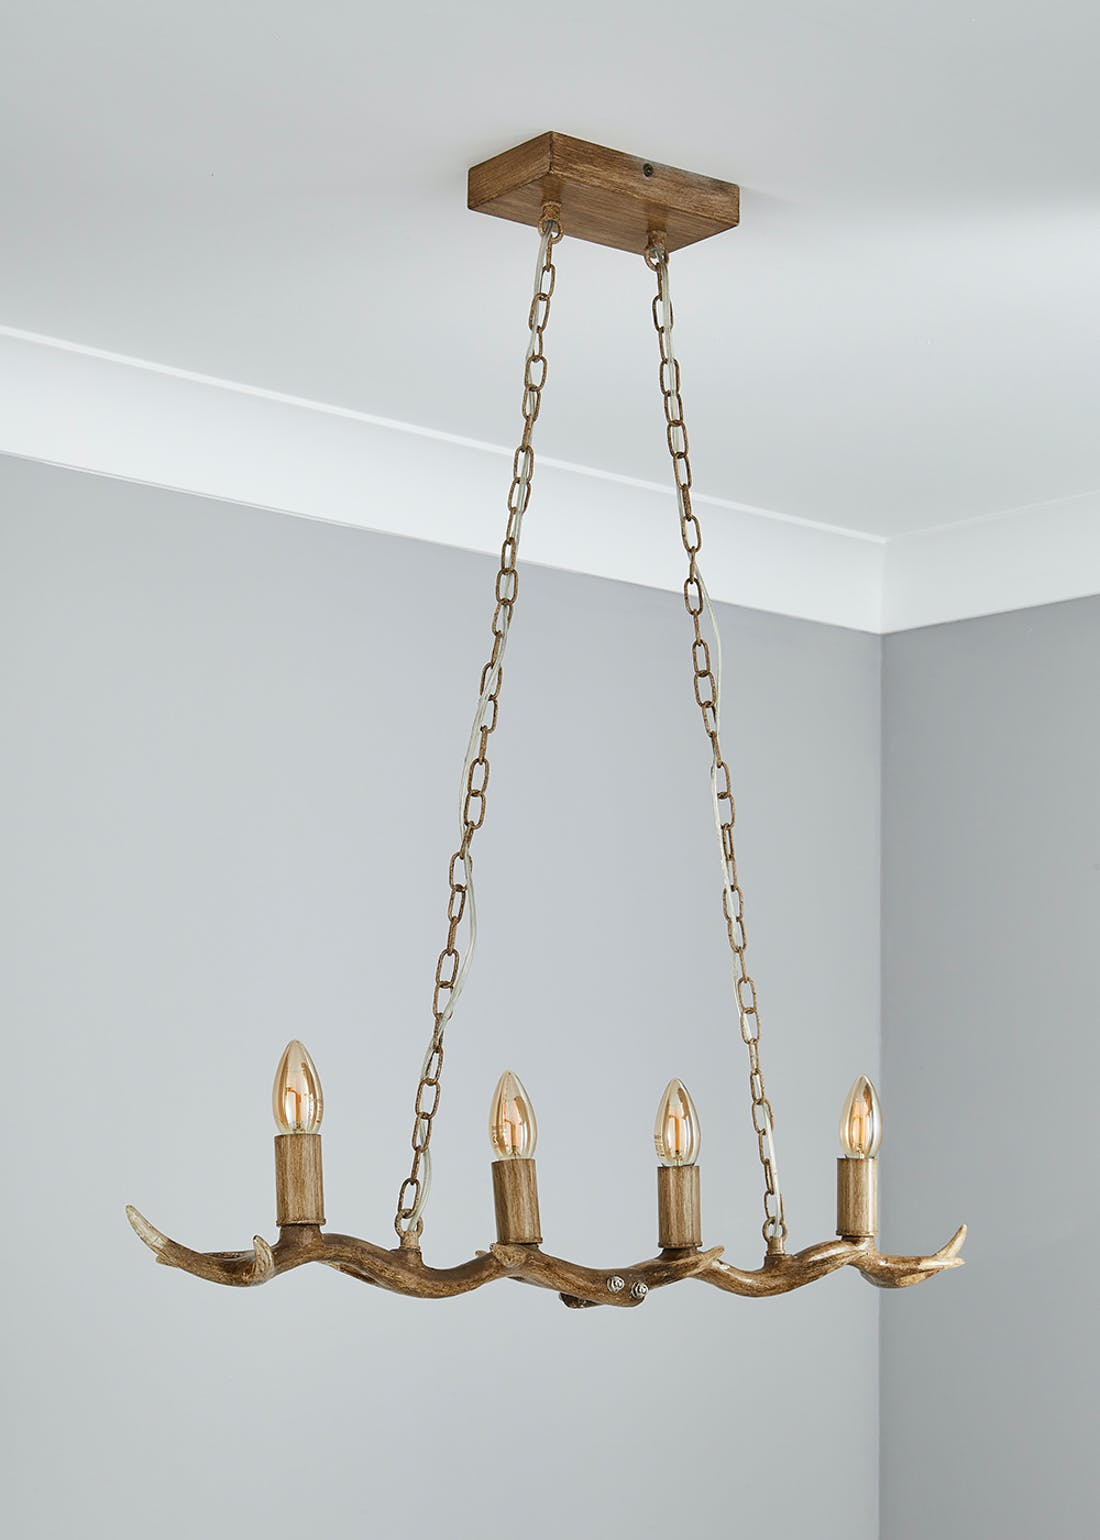 Antler Hanging Bar Light (H80cm x W85cm x D12cm)